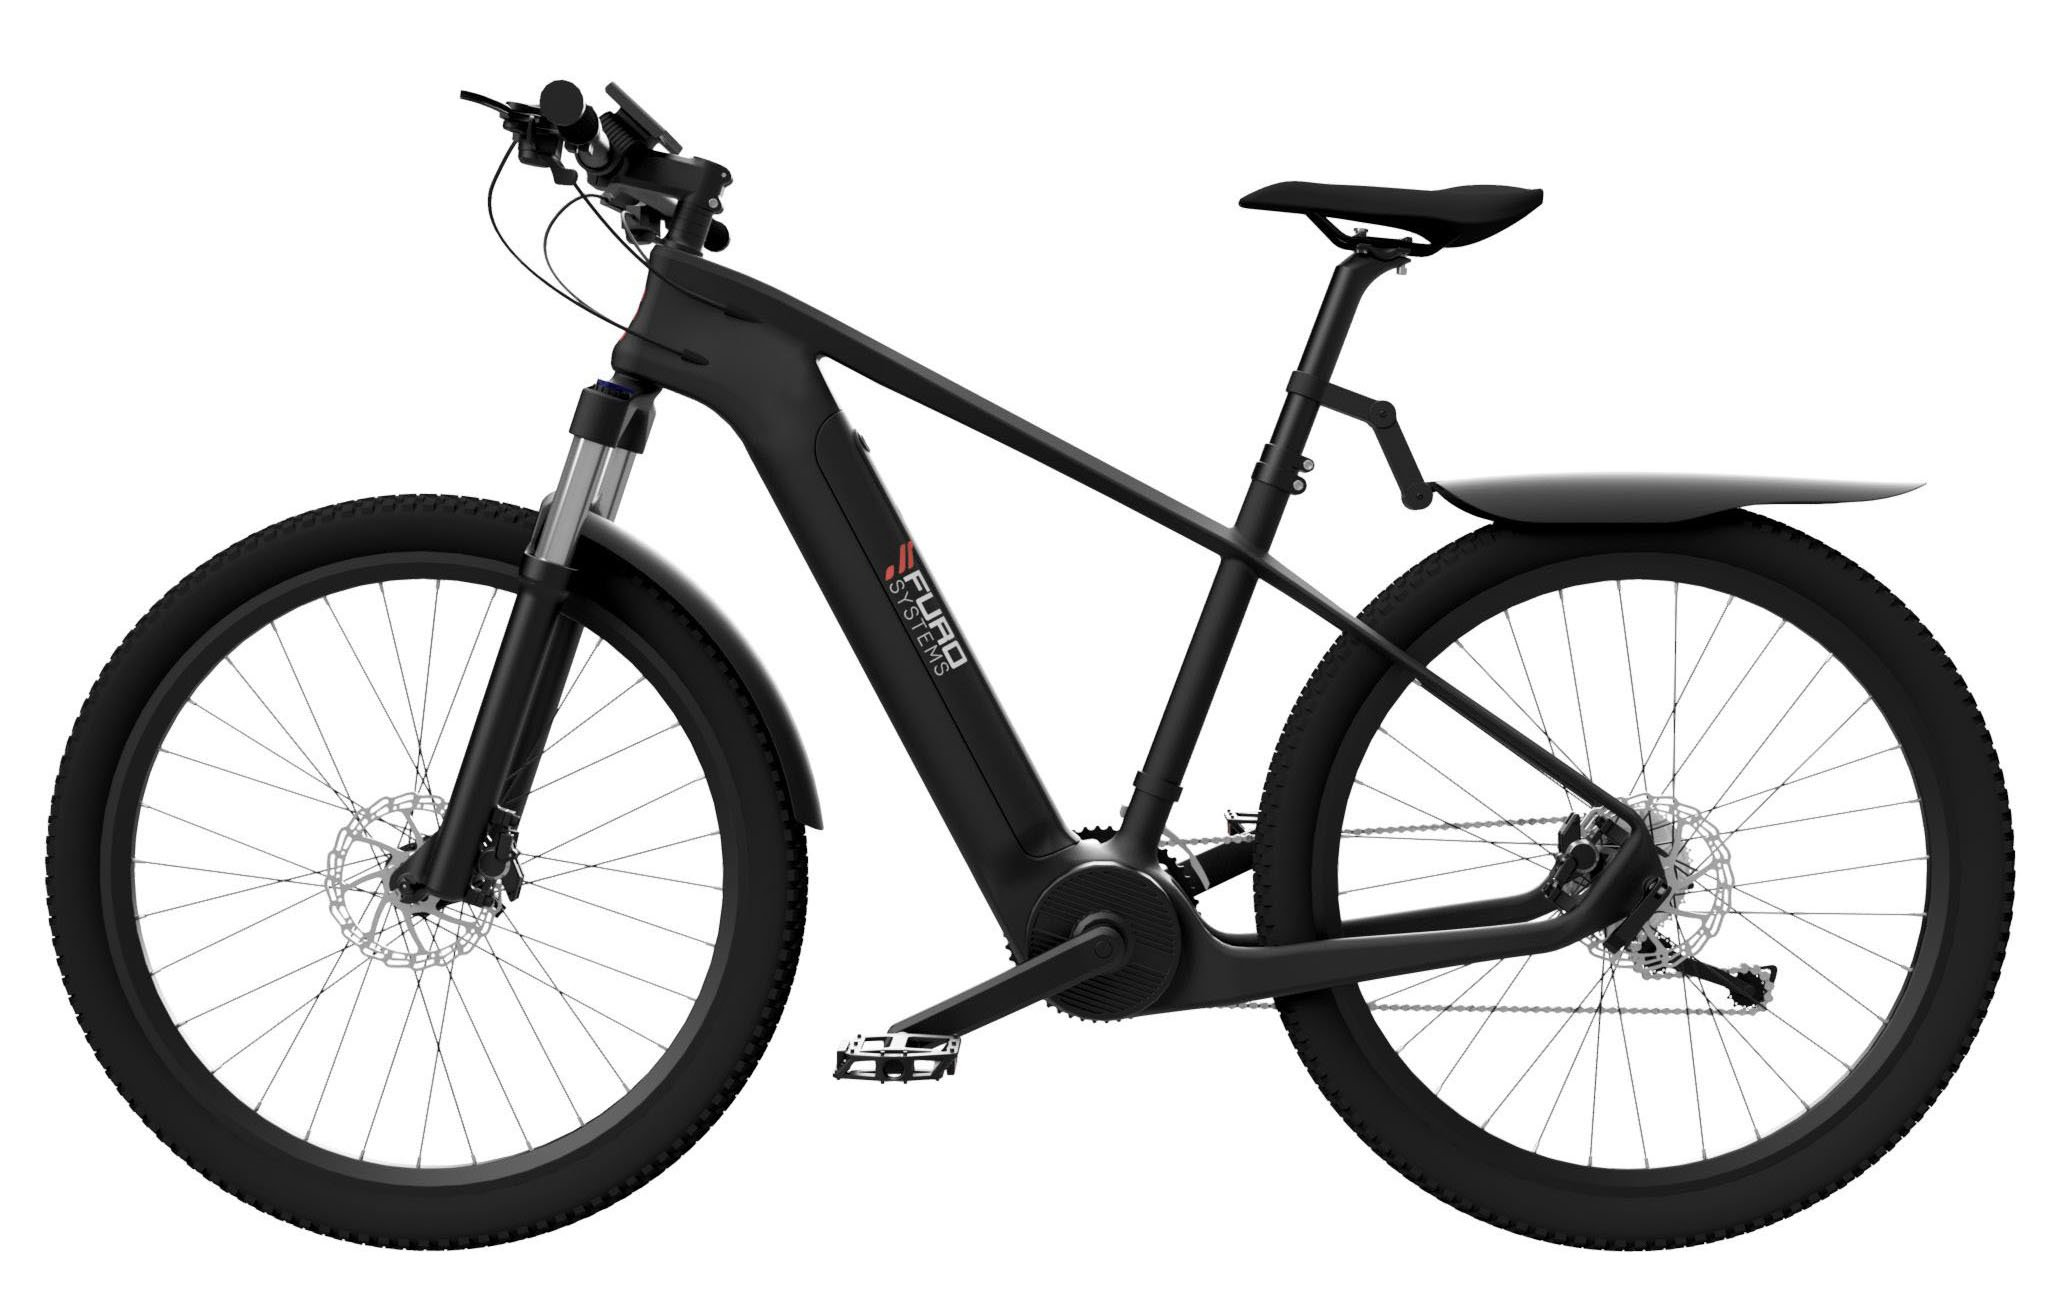 FuroSystems SIERRA Electric Mountain Bike with Accessories